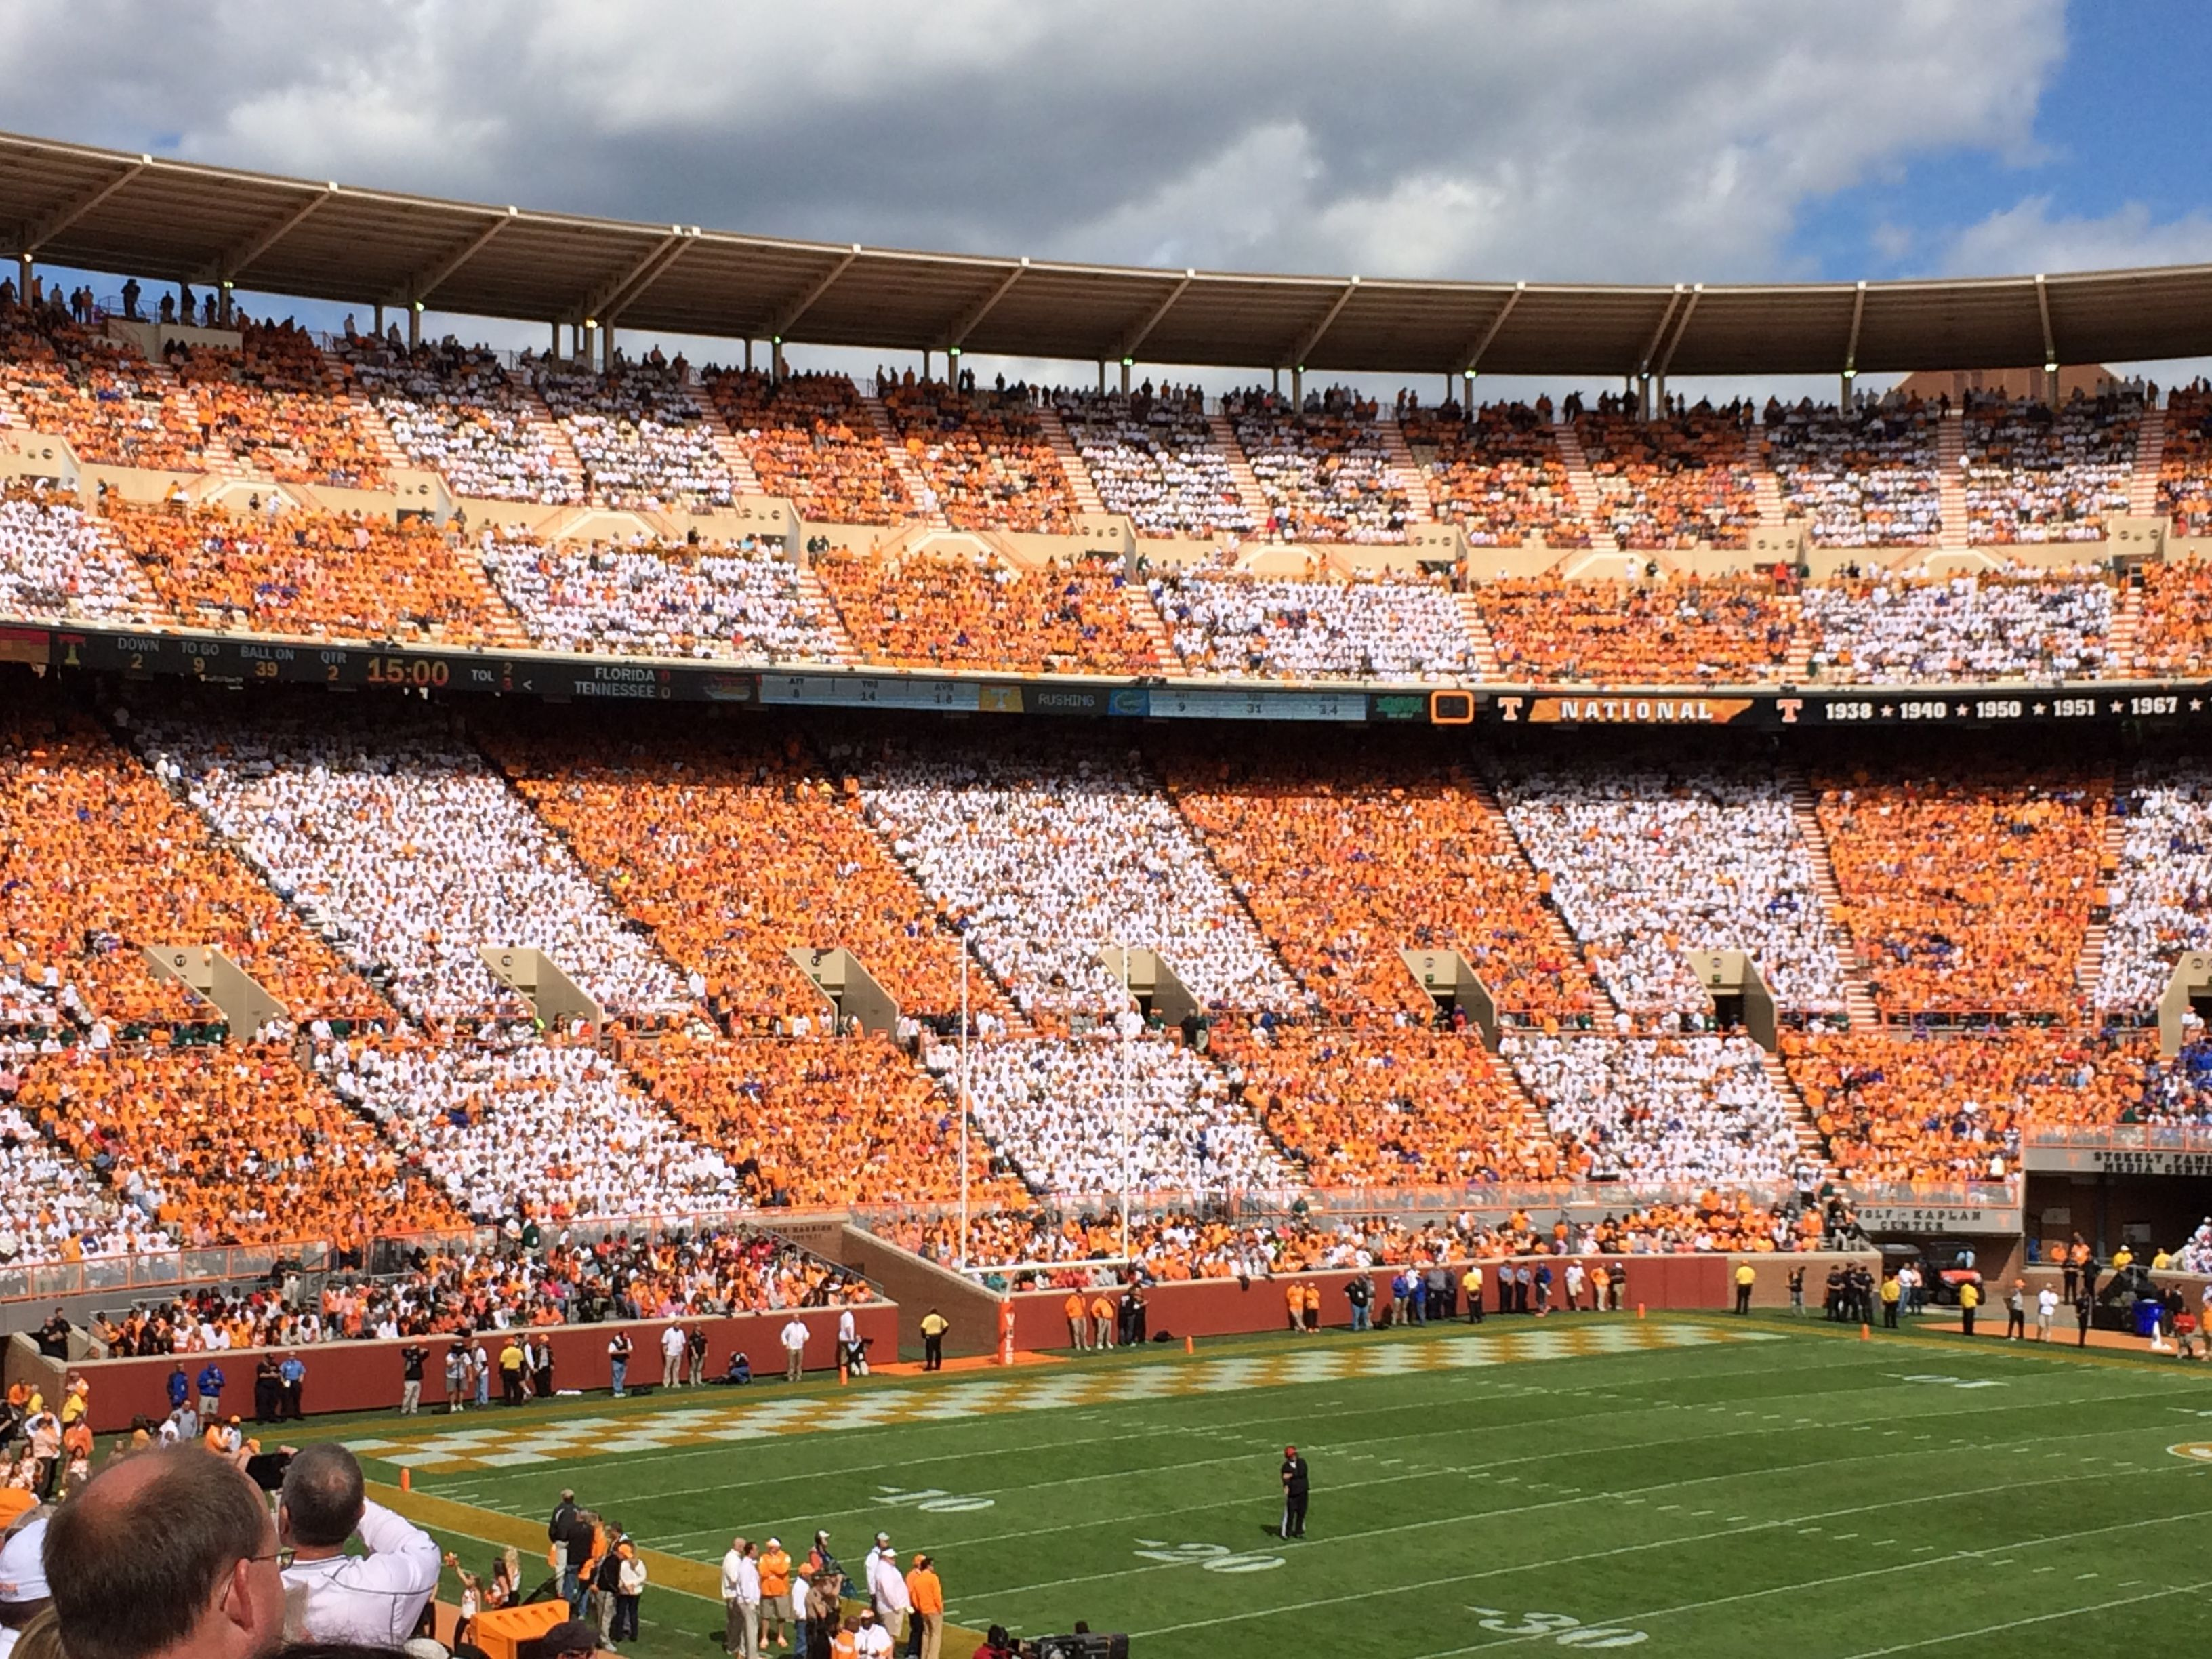 Tennessee vs Florida 2014 the first time ever to